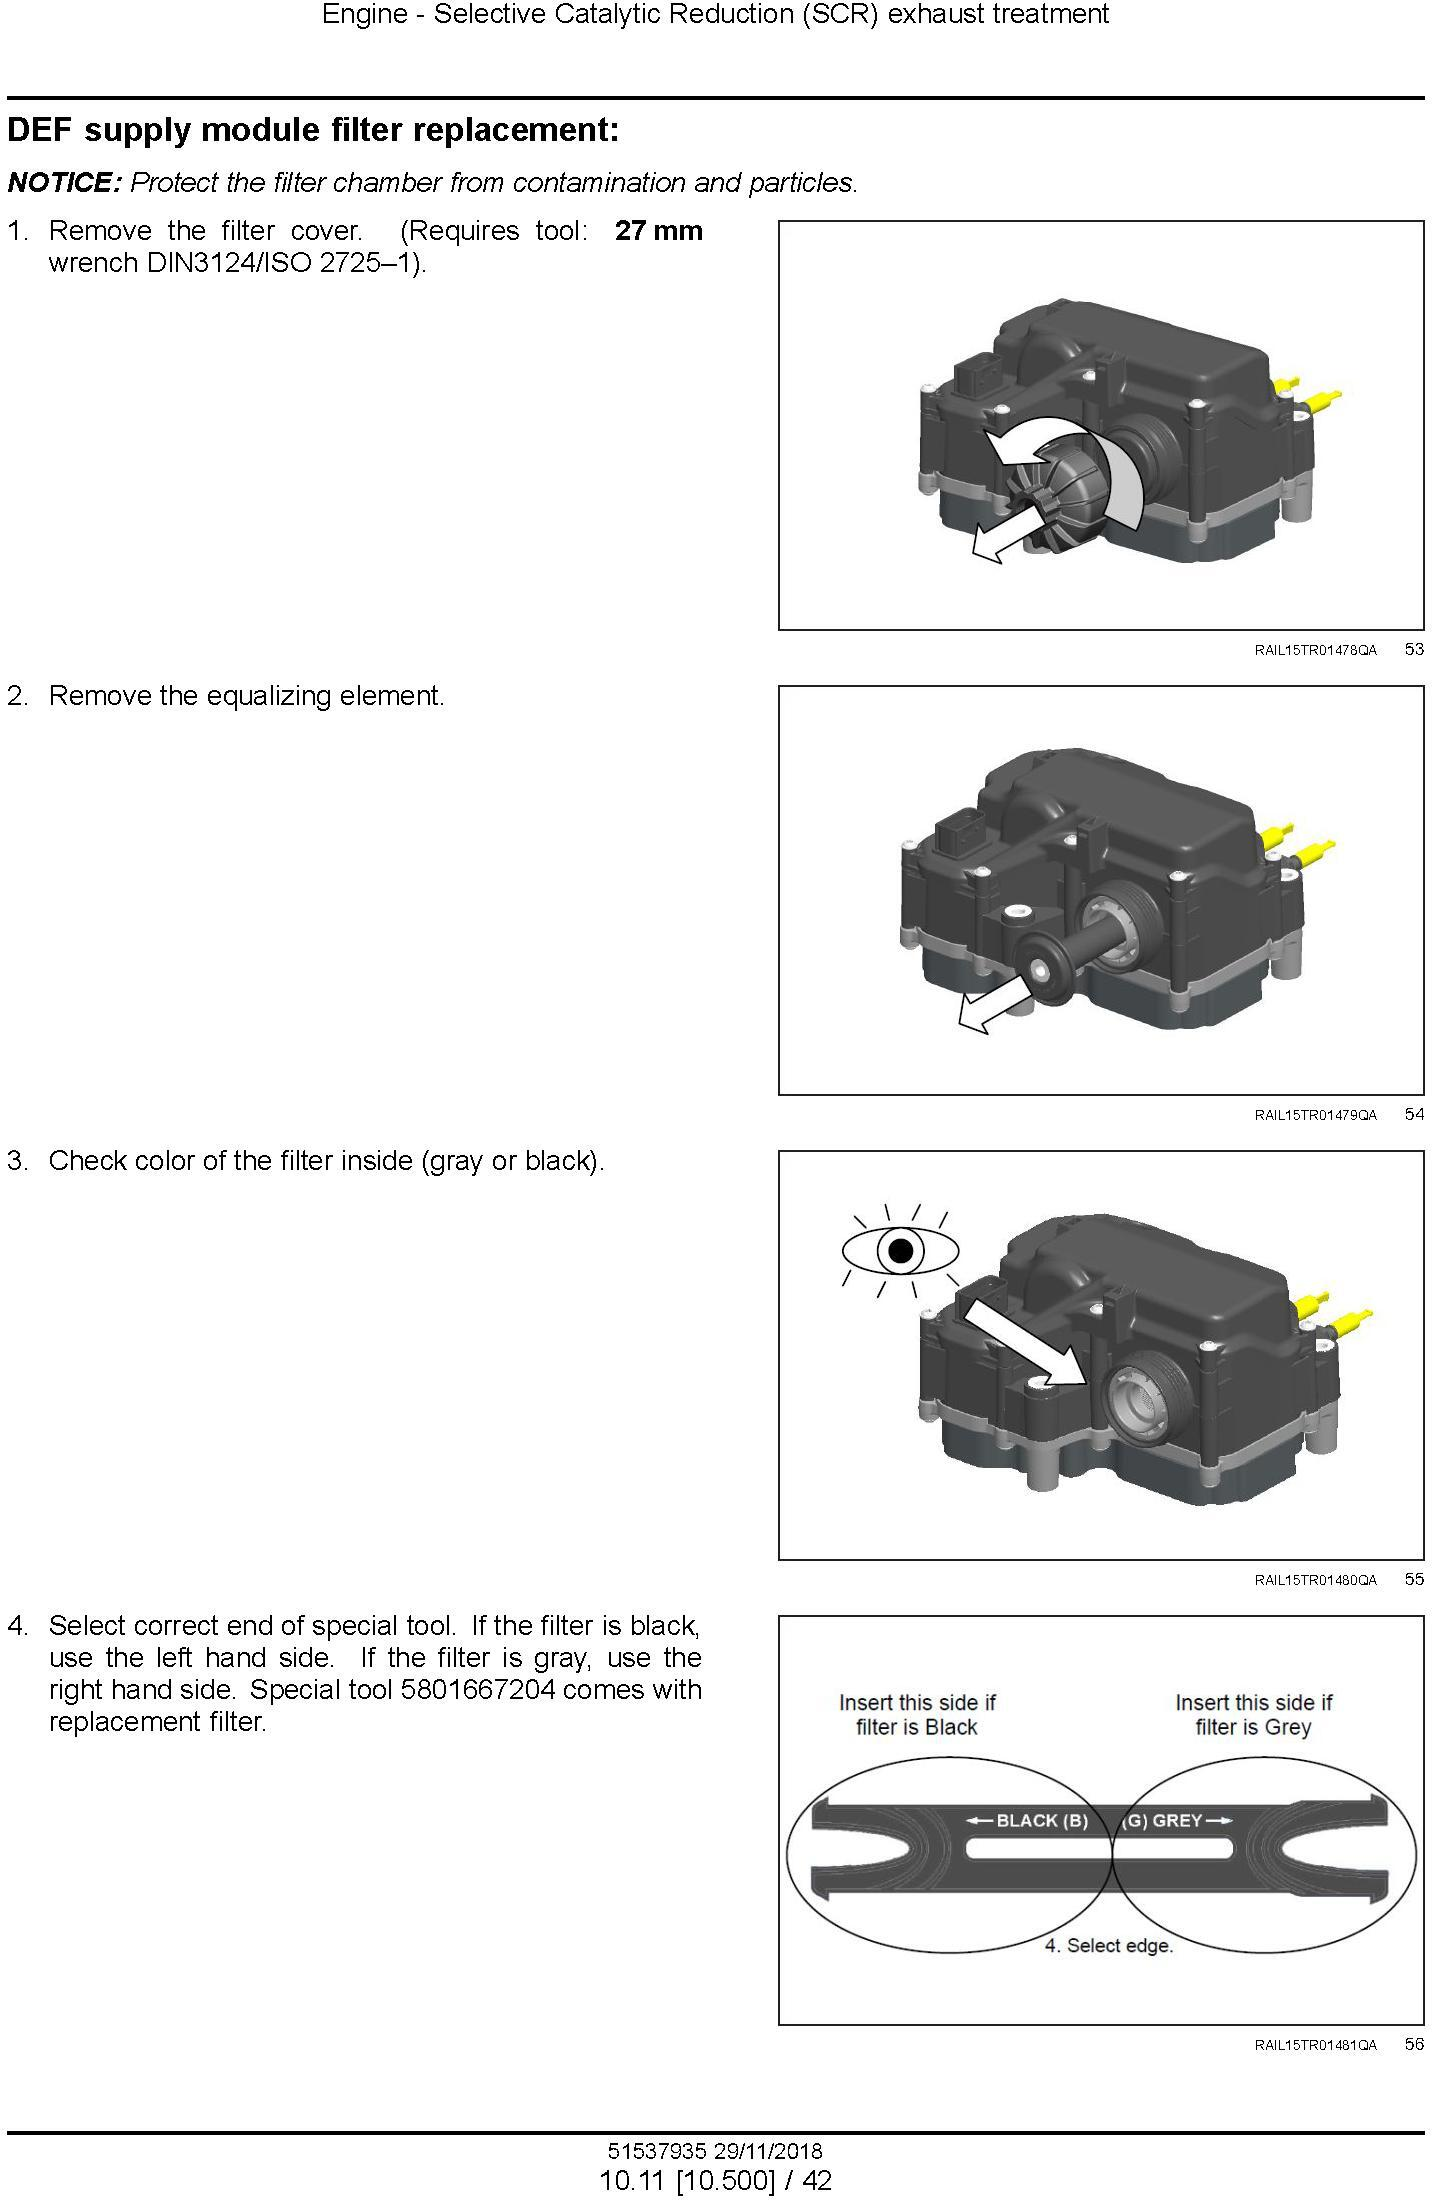 New Holland T8.320, T8.350, T8.380, T8.410 and SmartTrax PST Tier 4B Tractor Service Manual - 2